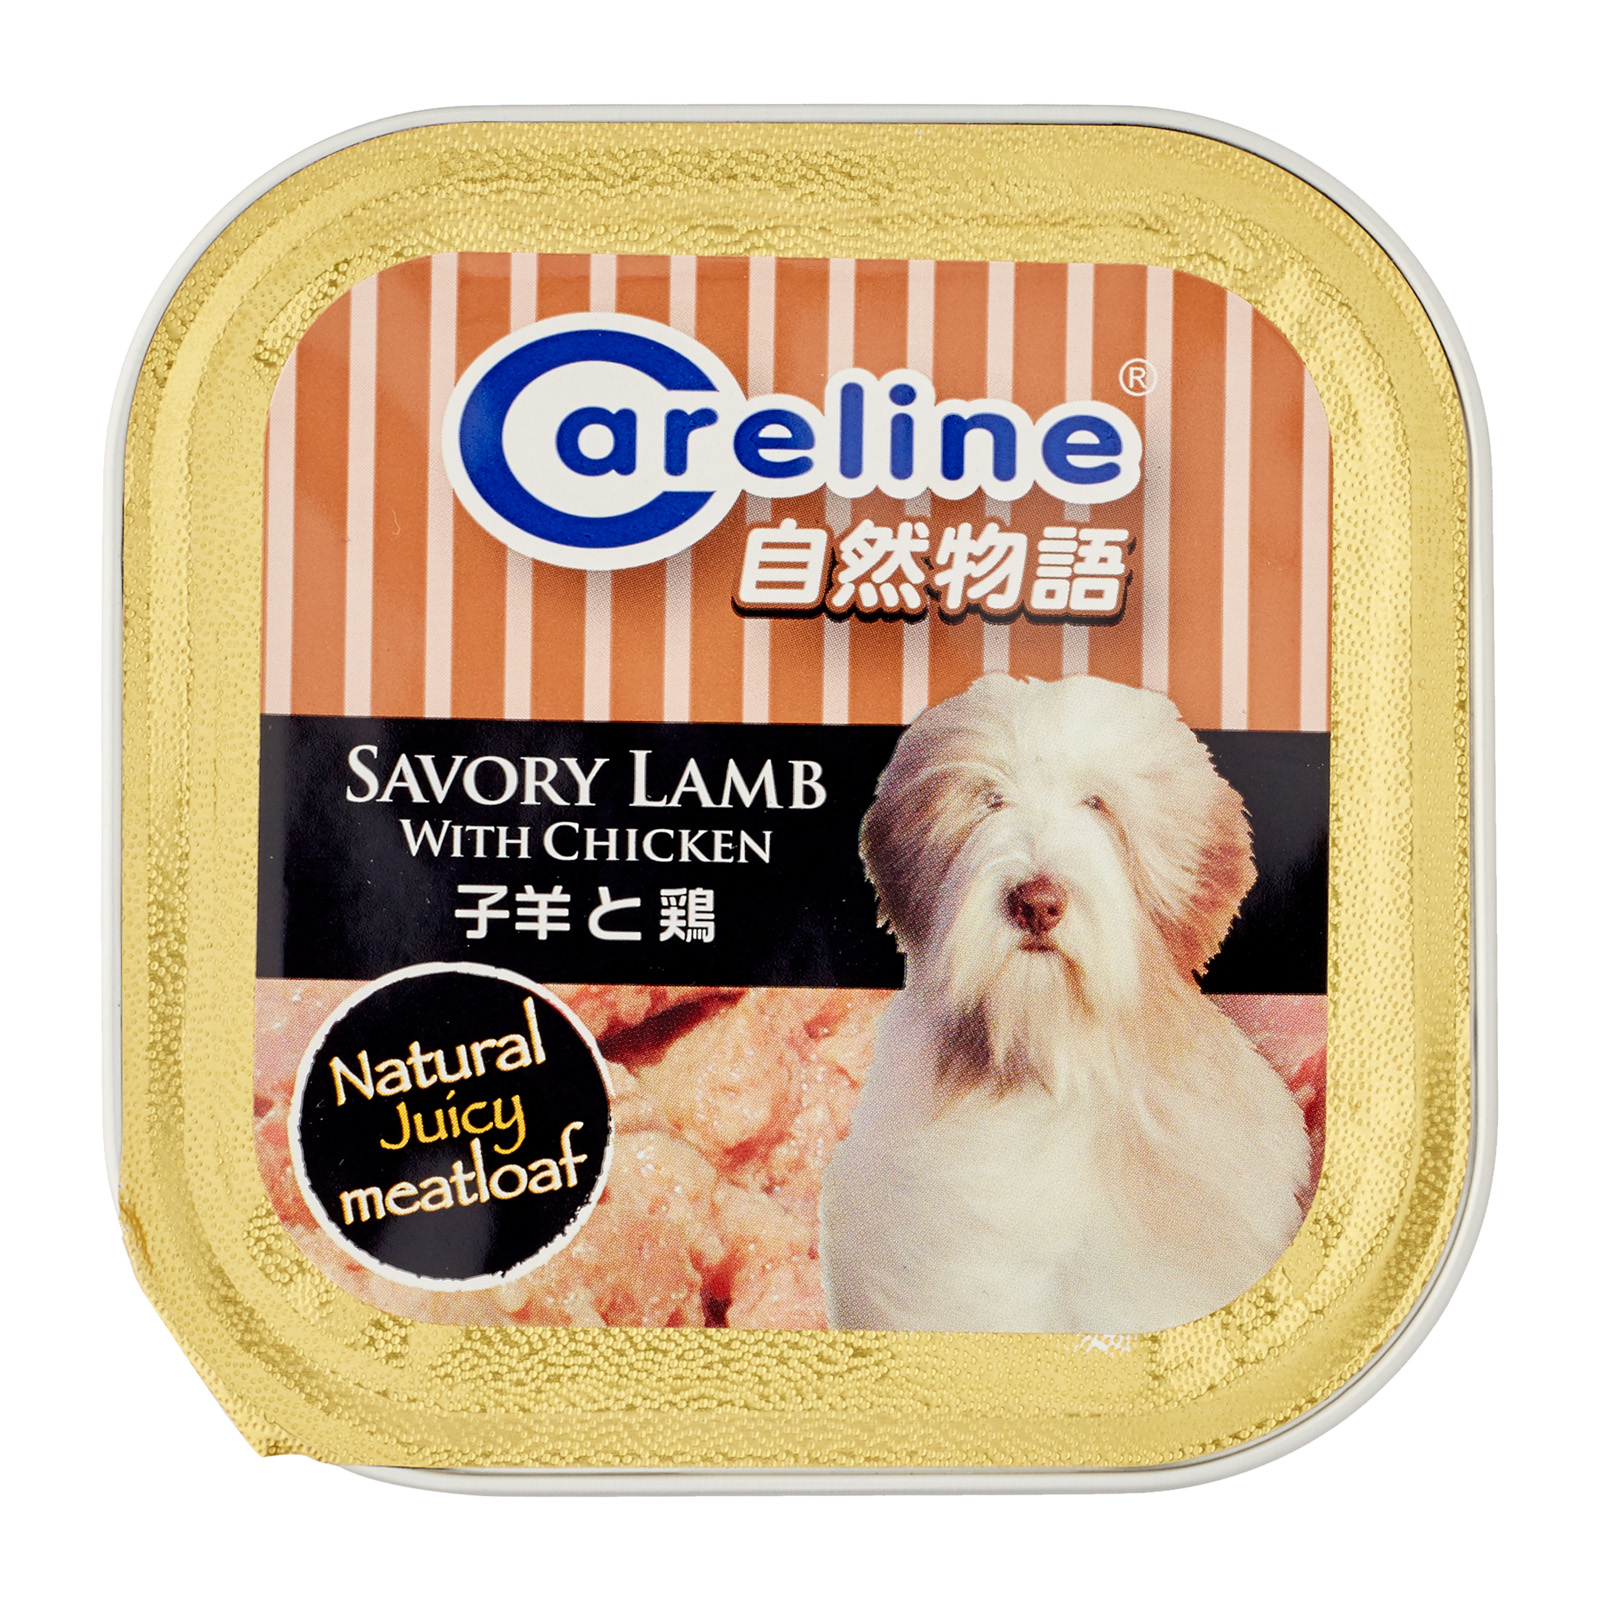 Careline Savory Lamb with Chicken 80g